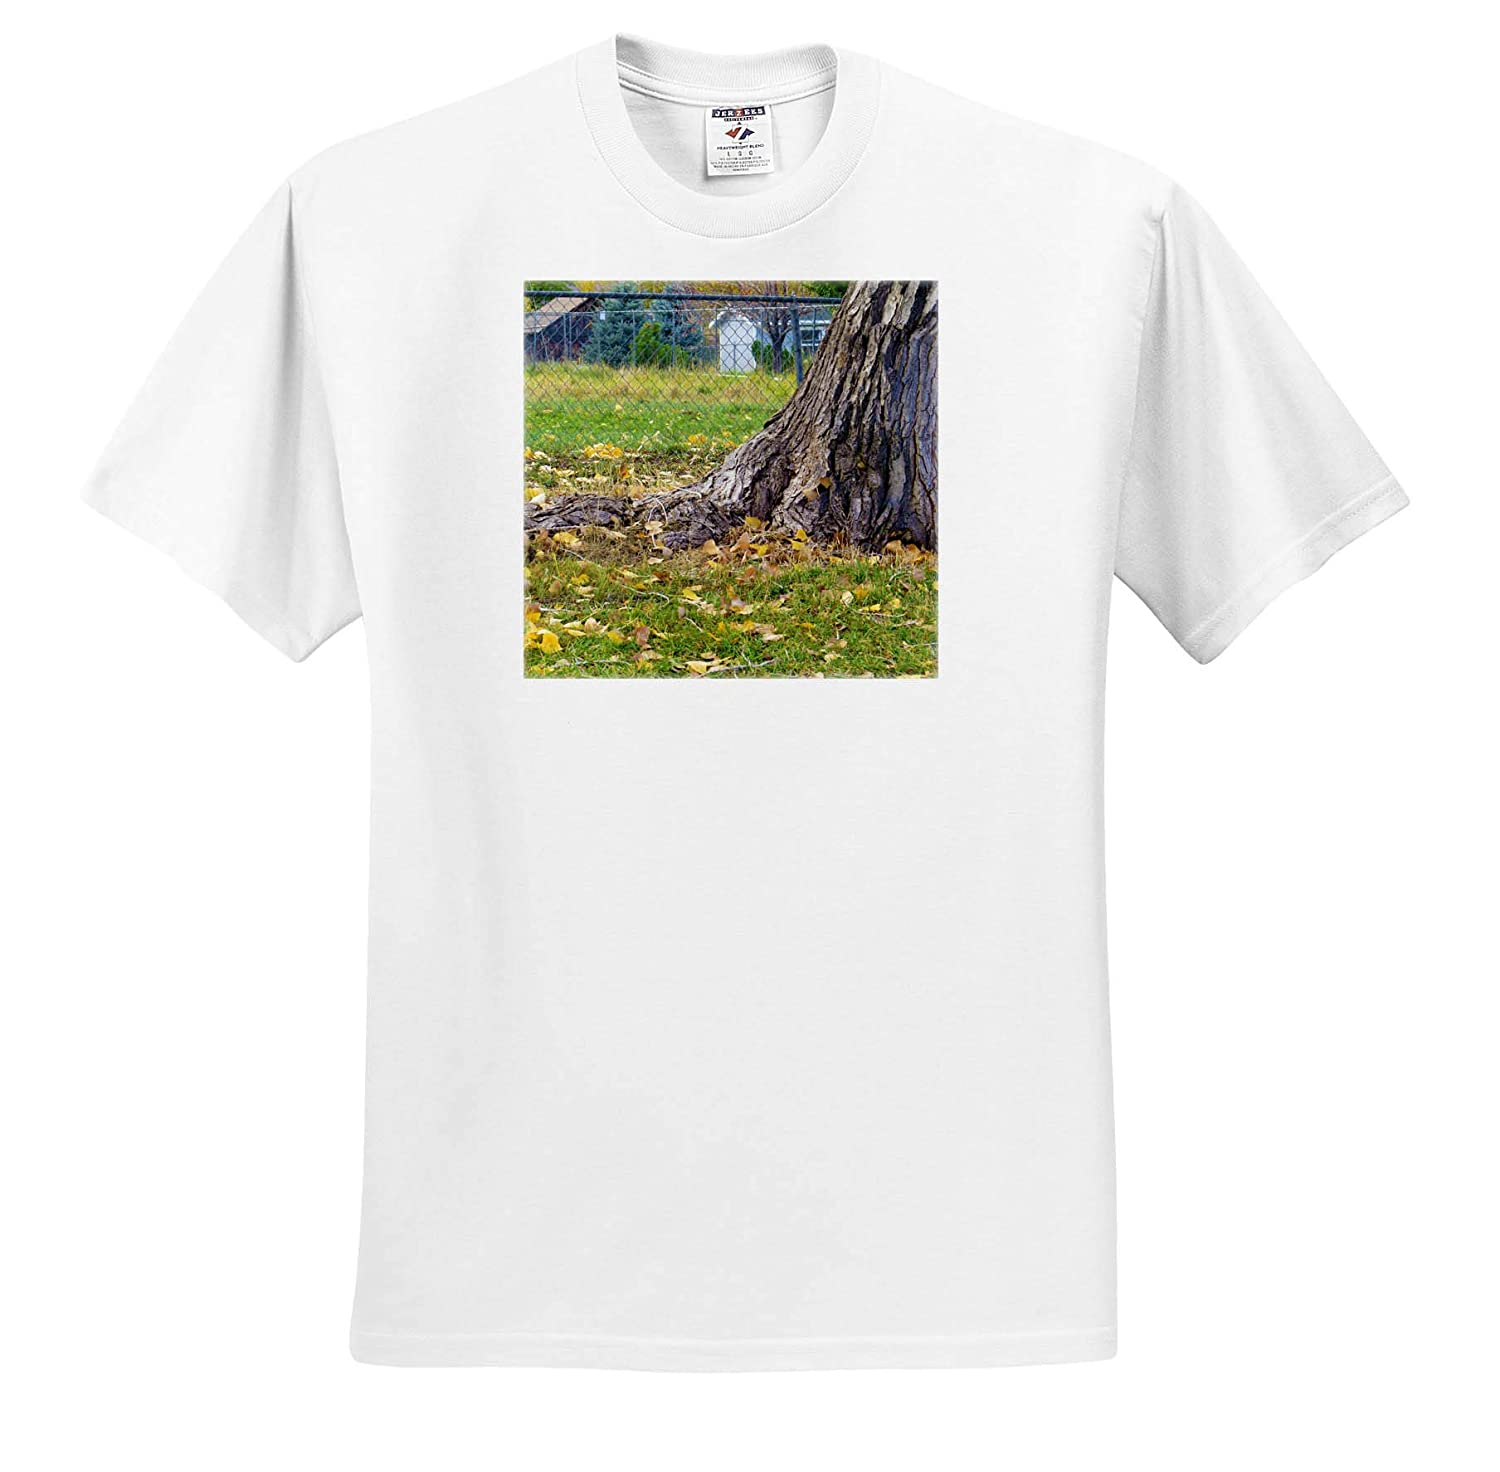 Autumn Leaves on The Ground Fall Leaves on he Ground at The Base of a Tree 3dRose Jos Fauxtographee T-Shirts